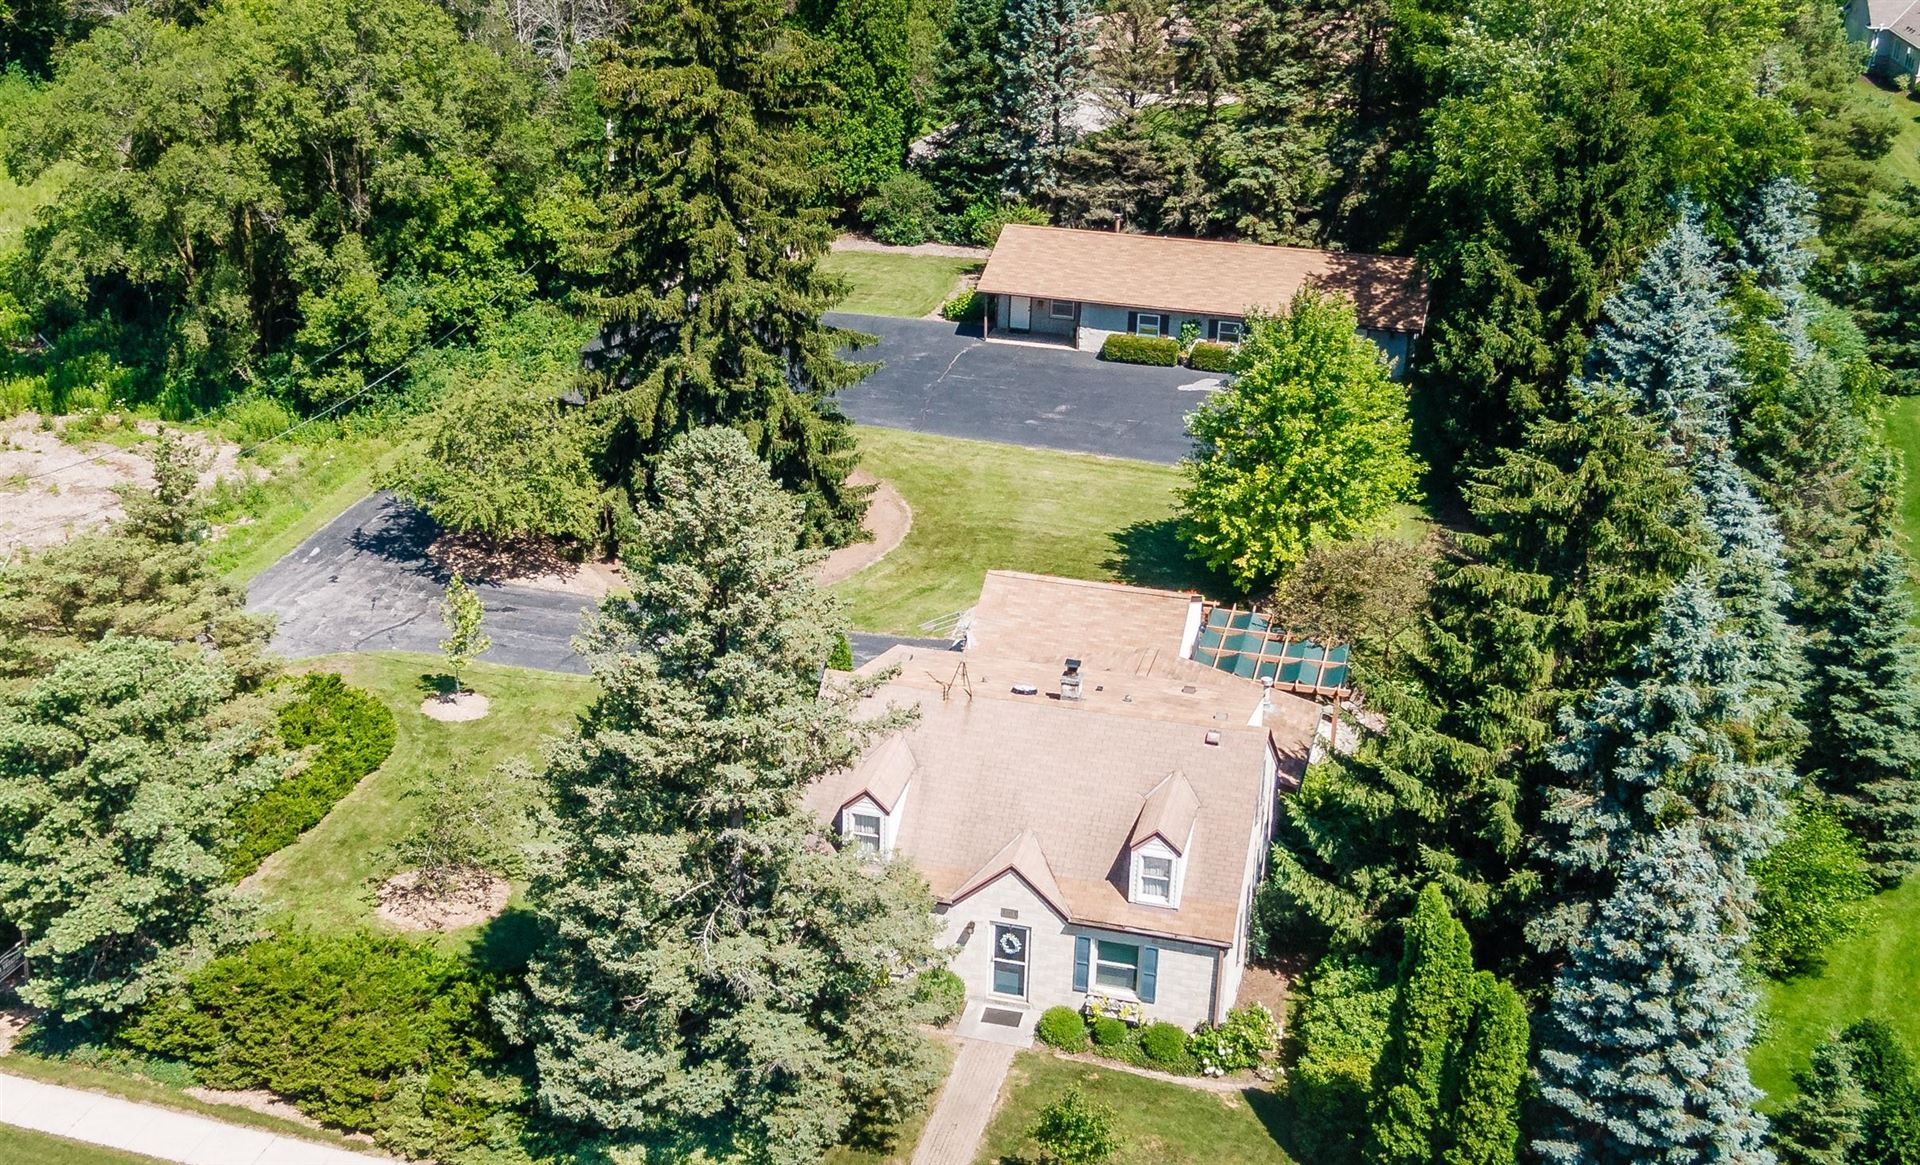 6714 W Mequon Rd, Mequon, WI 53092 - #: 1693279